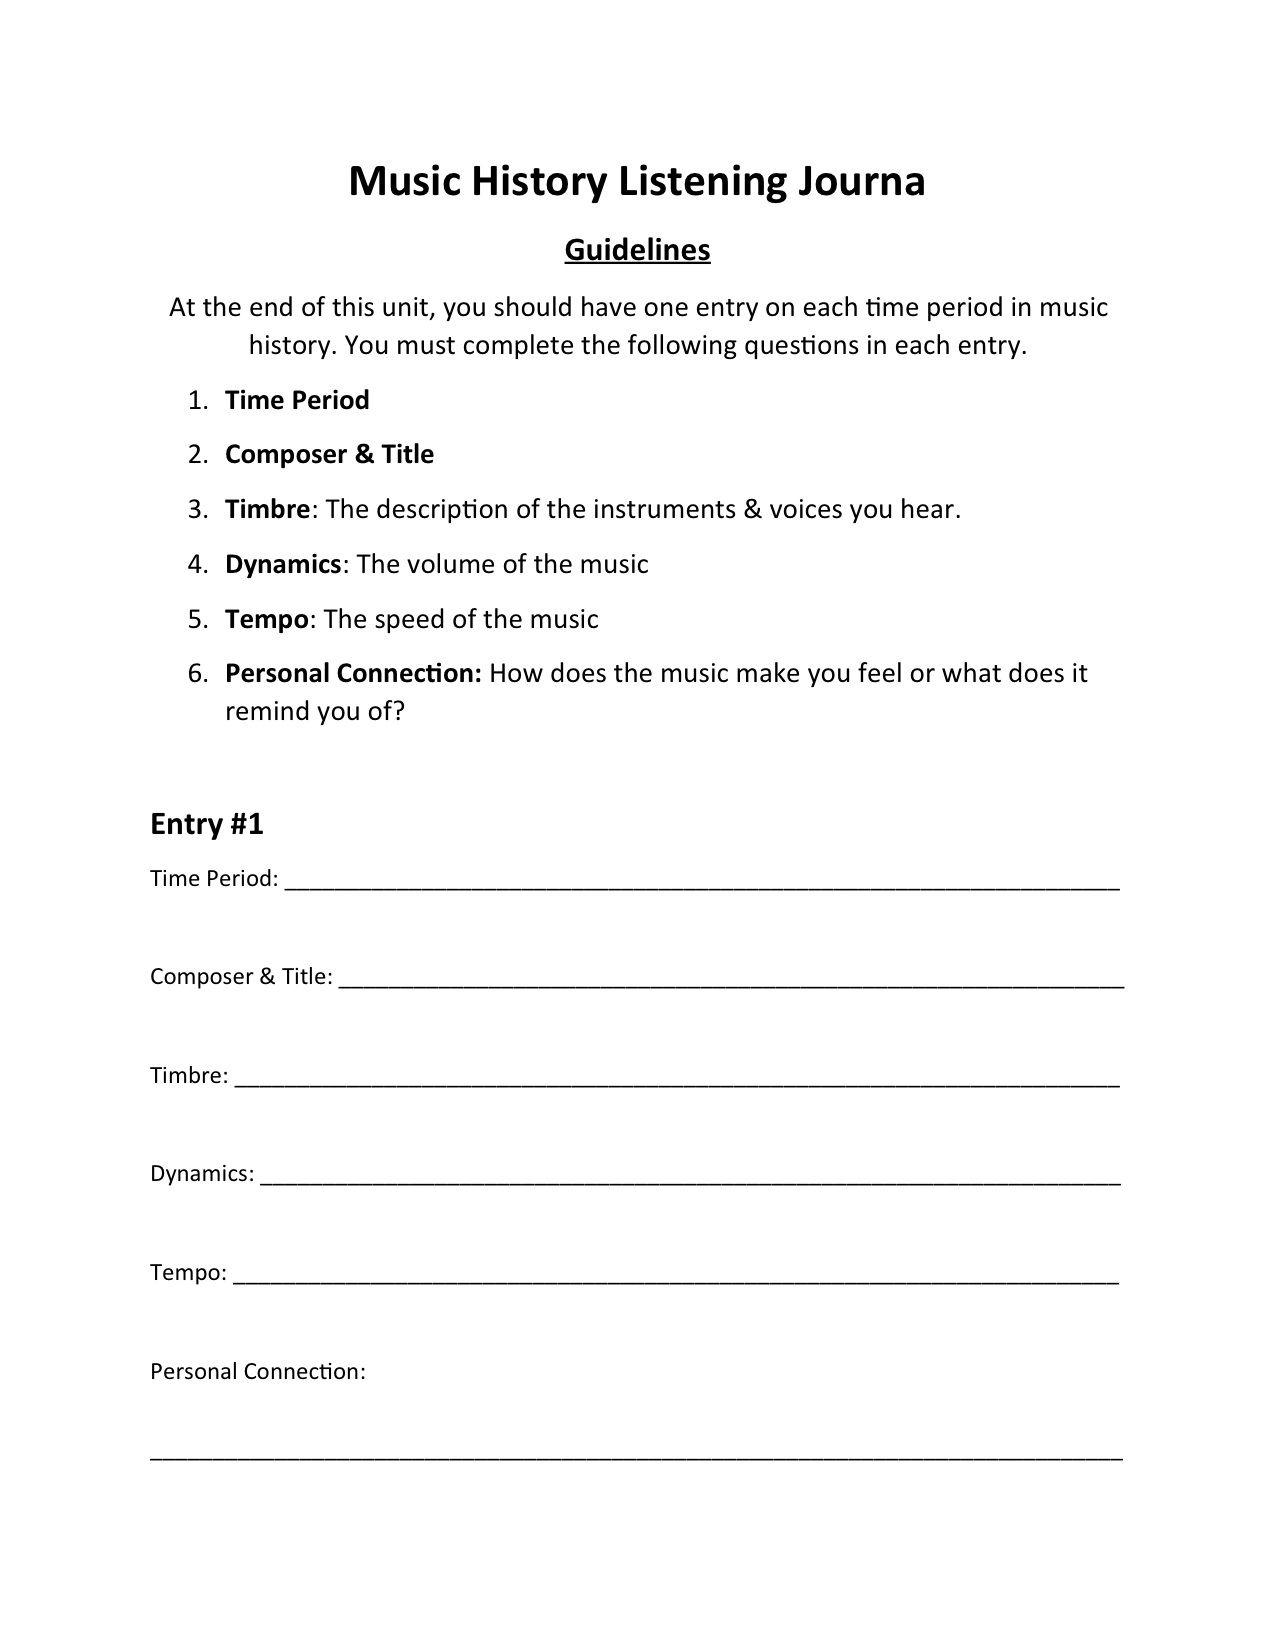 Great Way To Include Critical Listening In Music History Units Worksheet For Students To Write